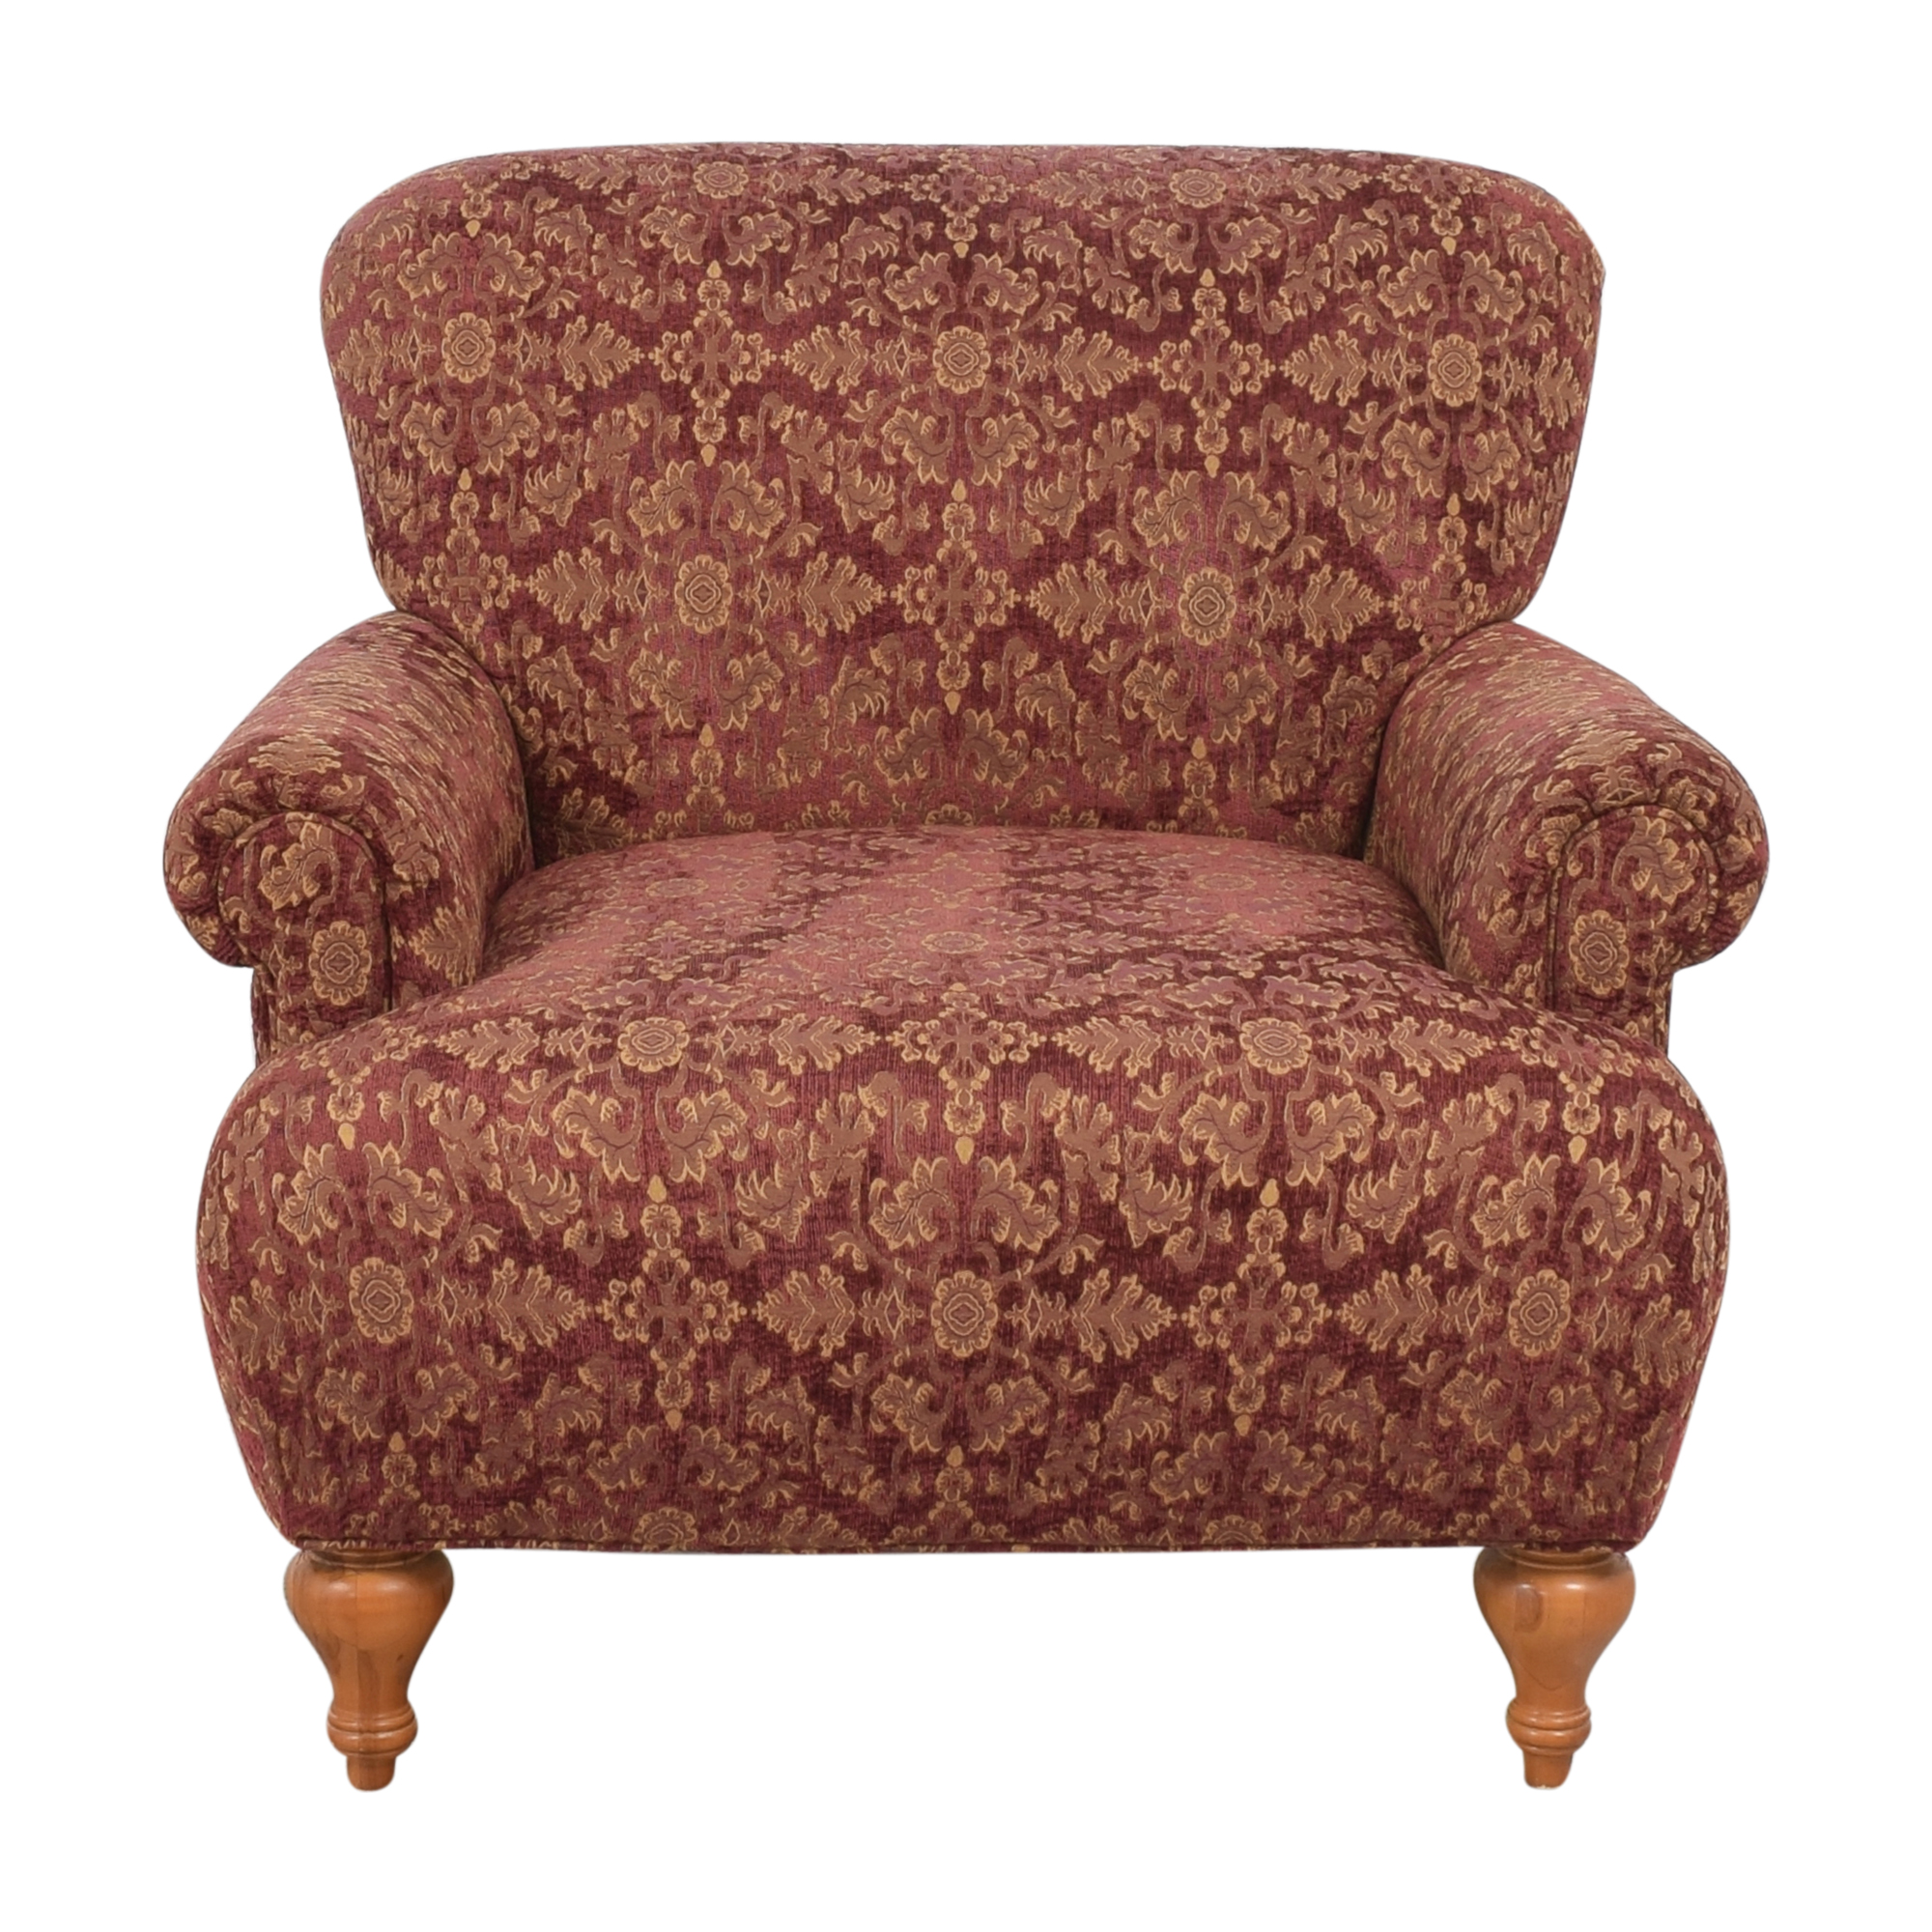 Roll Arm Accent Chair used